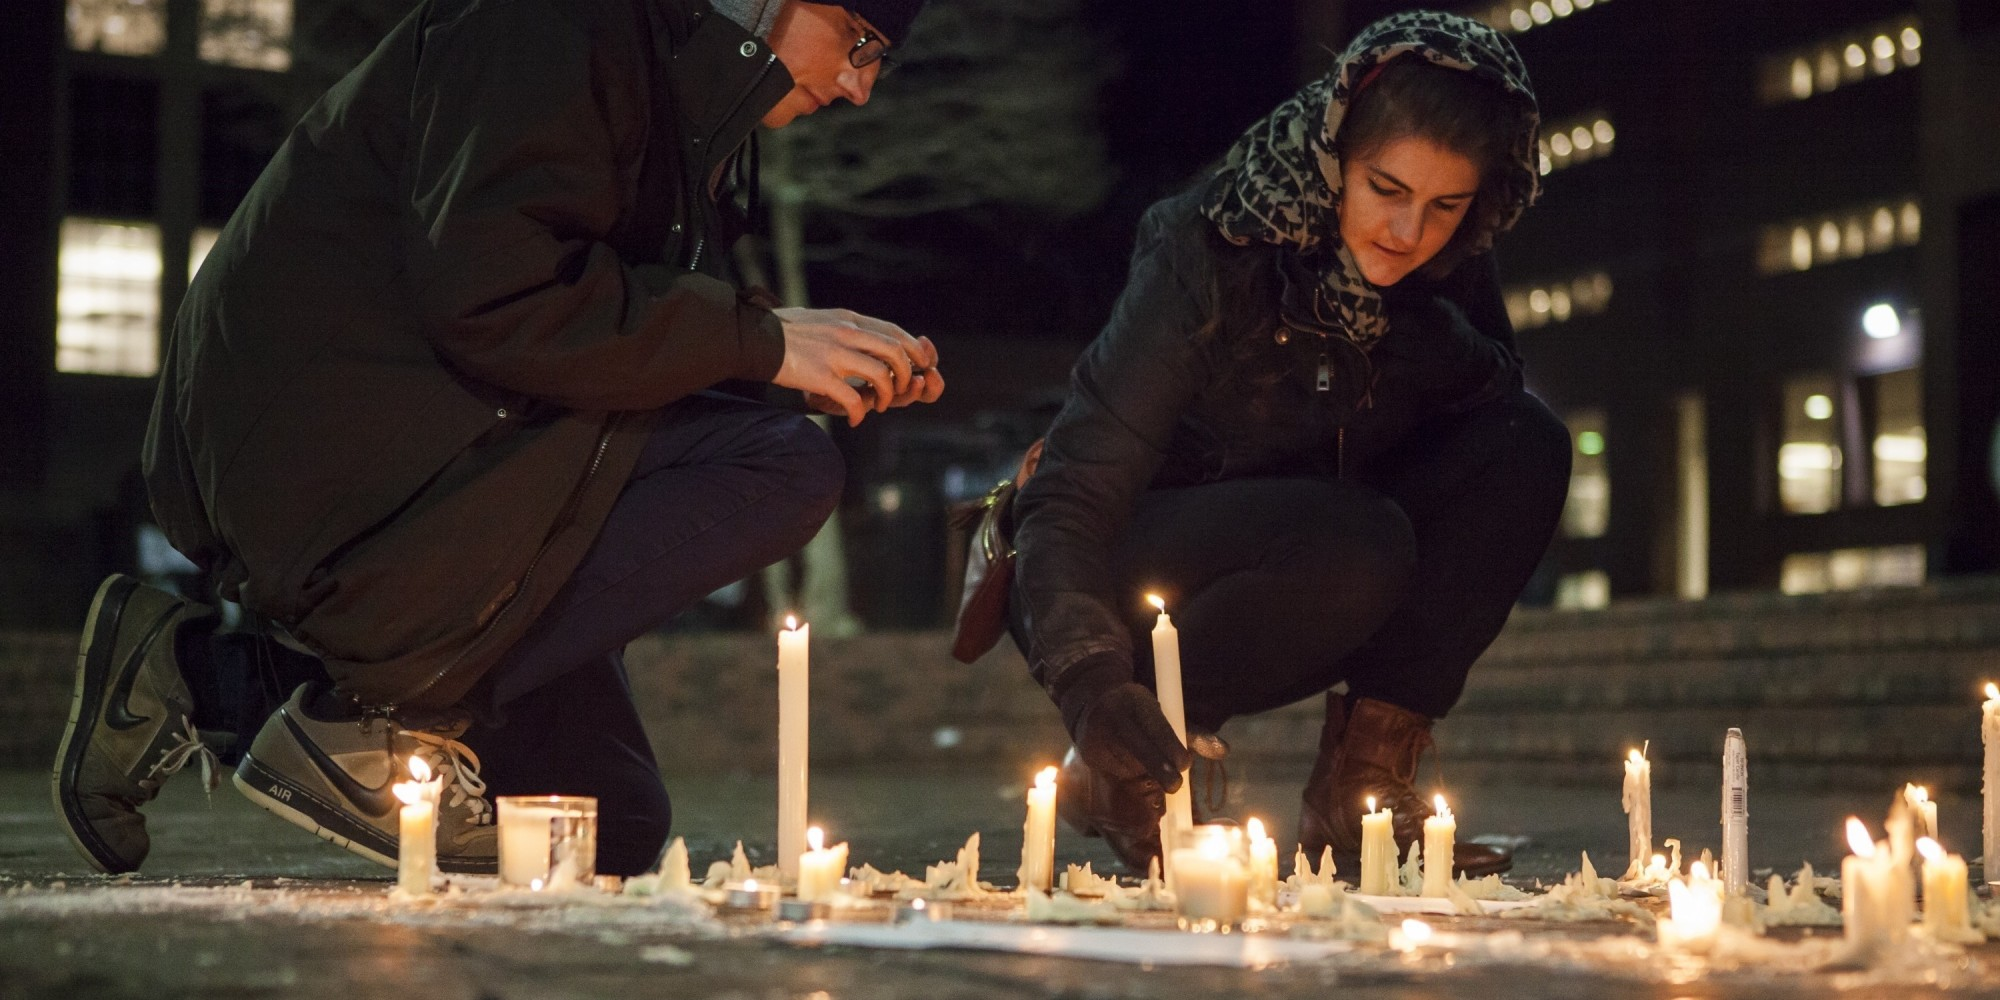 chapel hill muslim The fatal shooting tuesday of three members of a muslim family in chapel hill, north carolina, has prompted condemnation and calls for introspection and compassion from prominent atheists and.